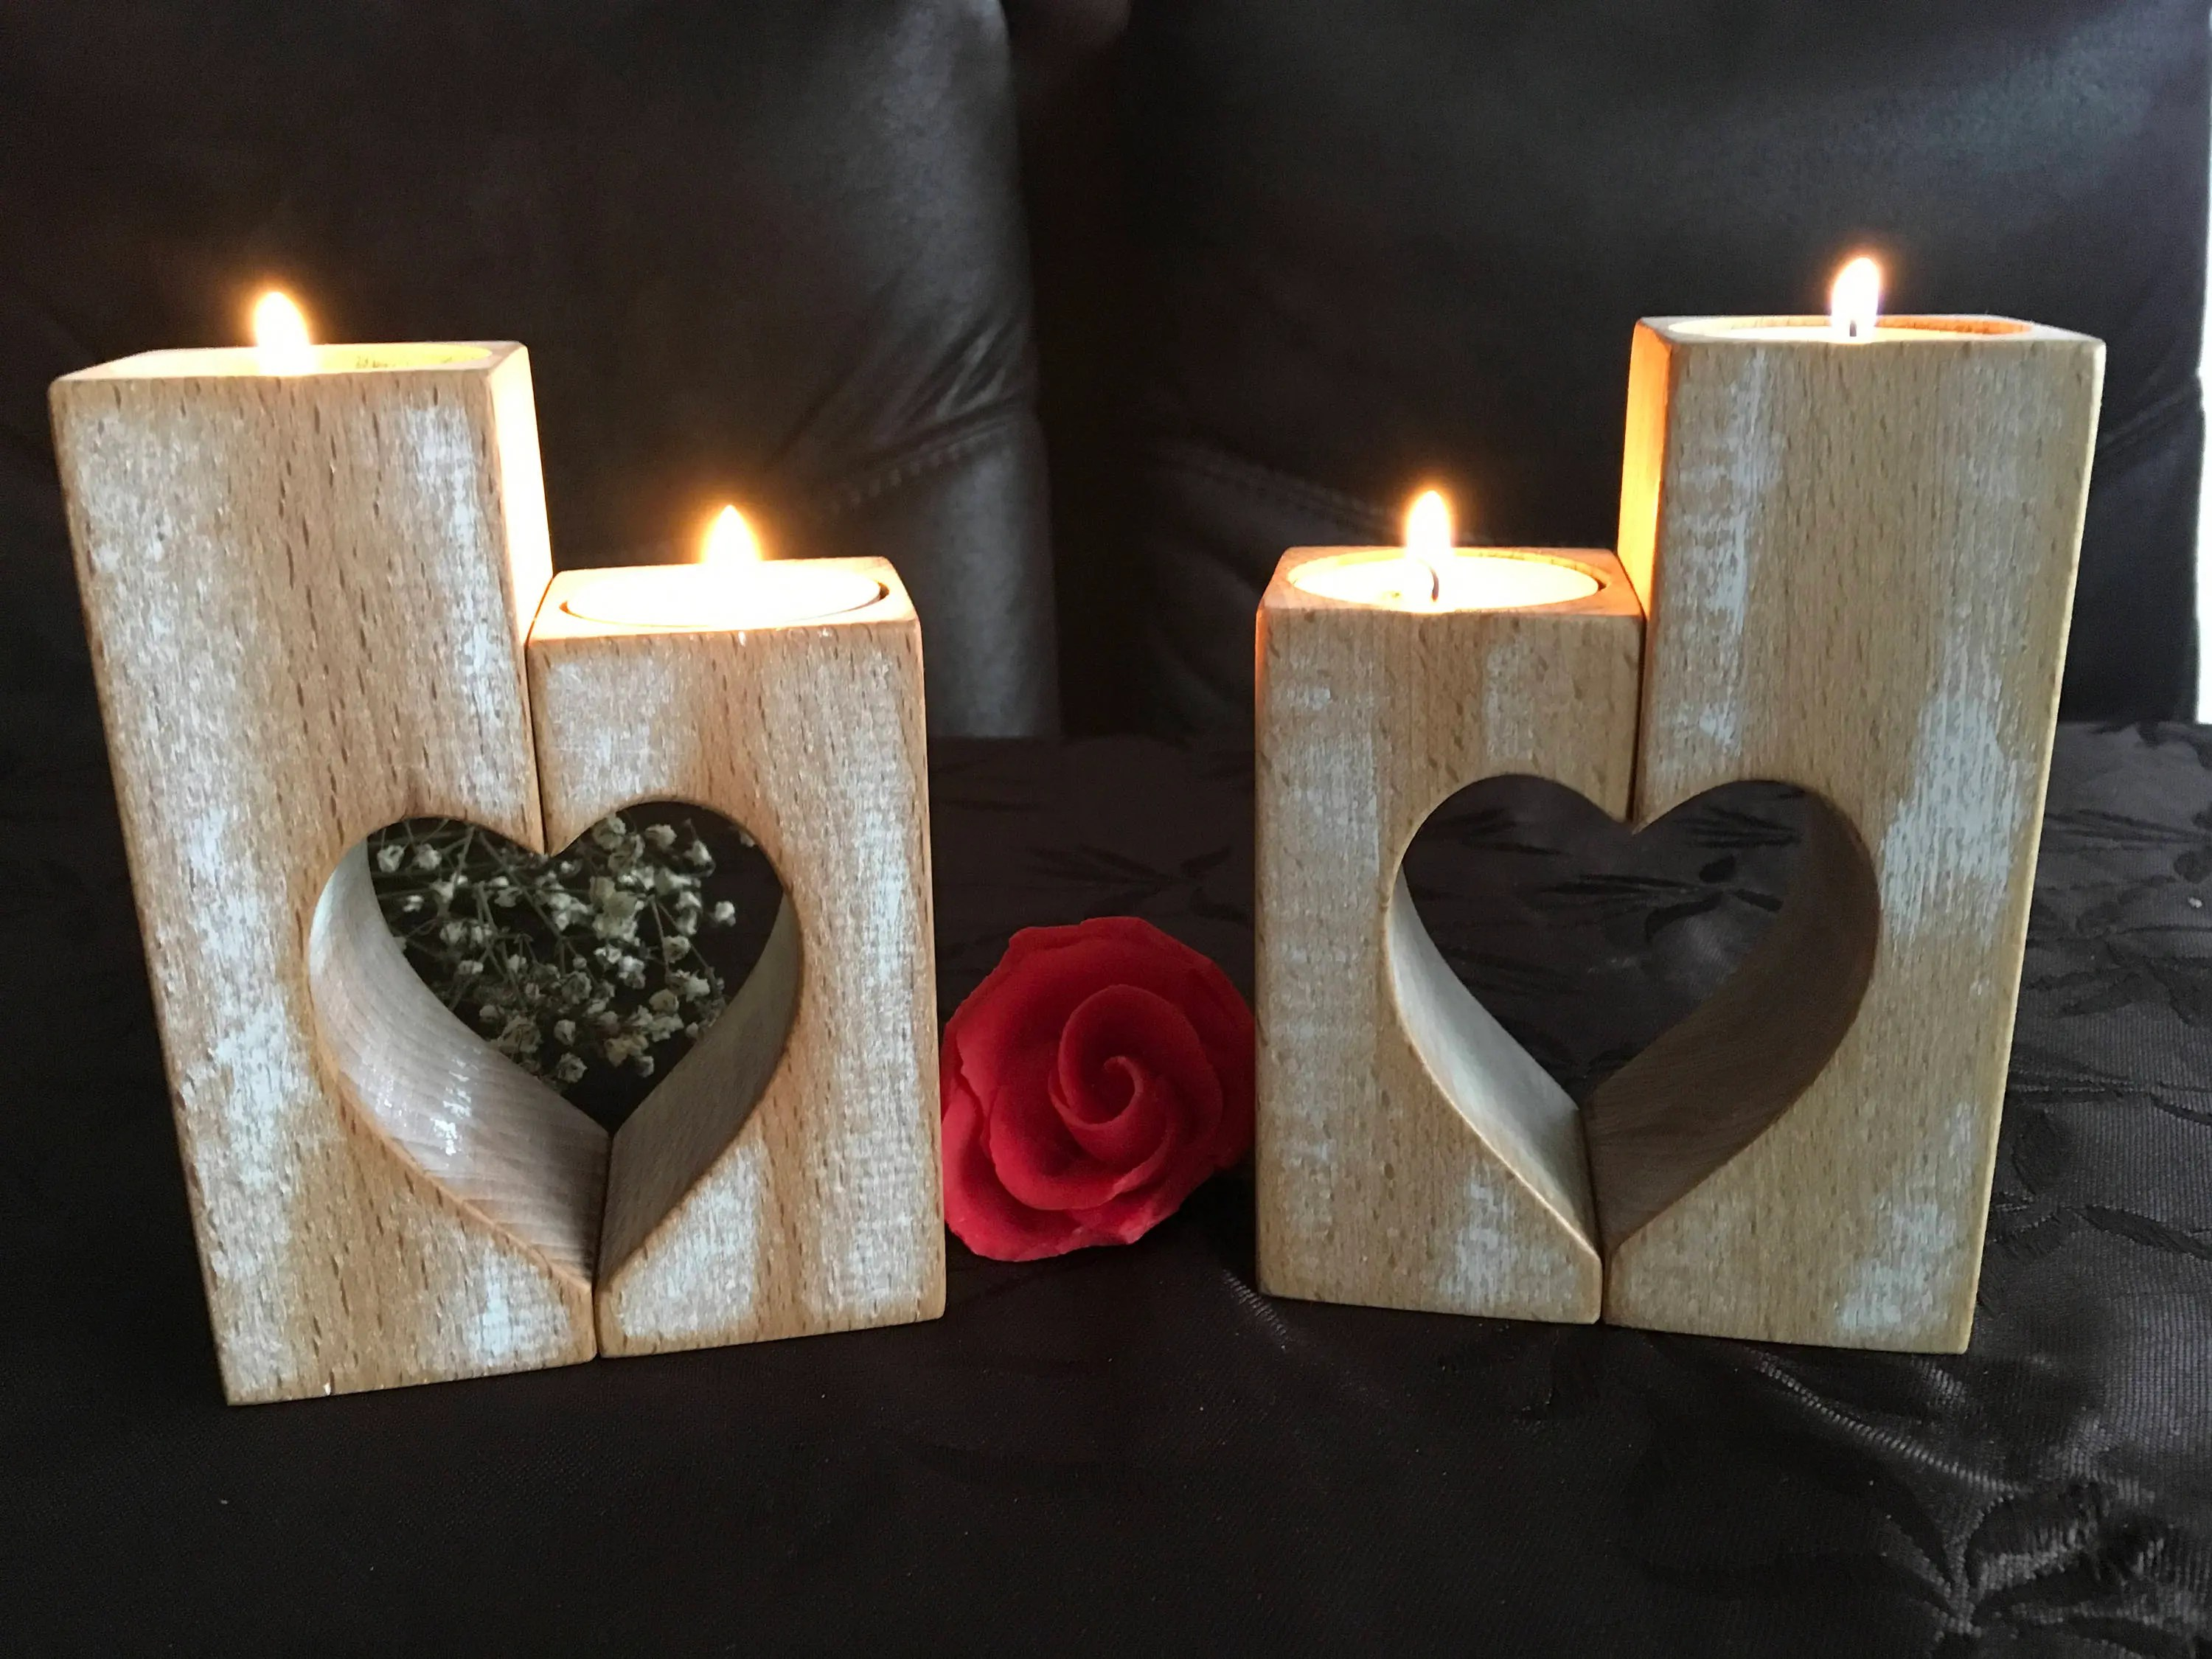 Genial Wood Candlestick Hers Rustic Wooden Candle Hers Set Wood Candlestick Hers Rustic Heartsmors Day Gift Wedding Gift Home Decorations Ight Candle Her Wooden Candle Hers Set houzz 01 Wood Candle Holders